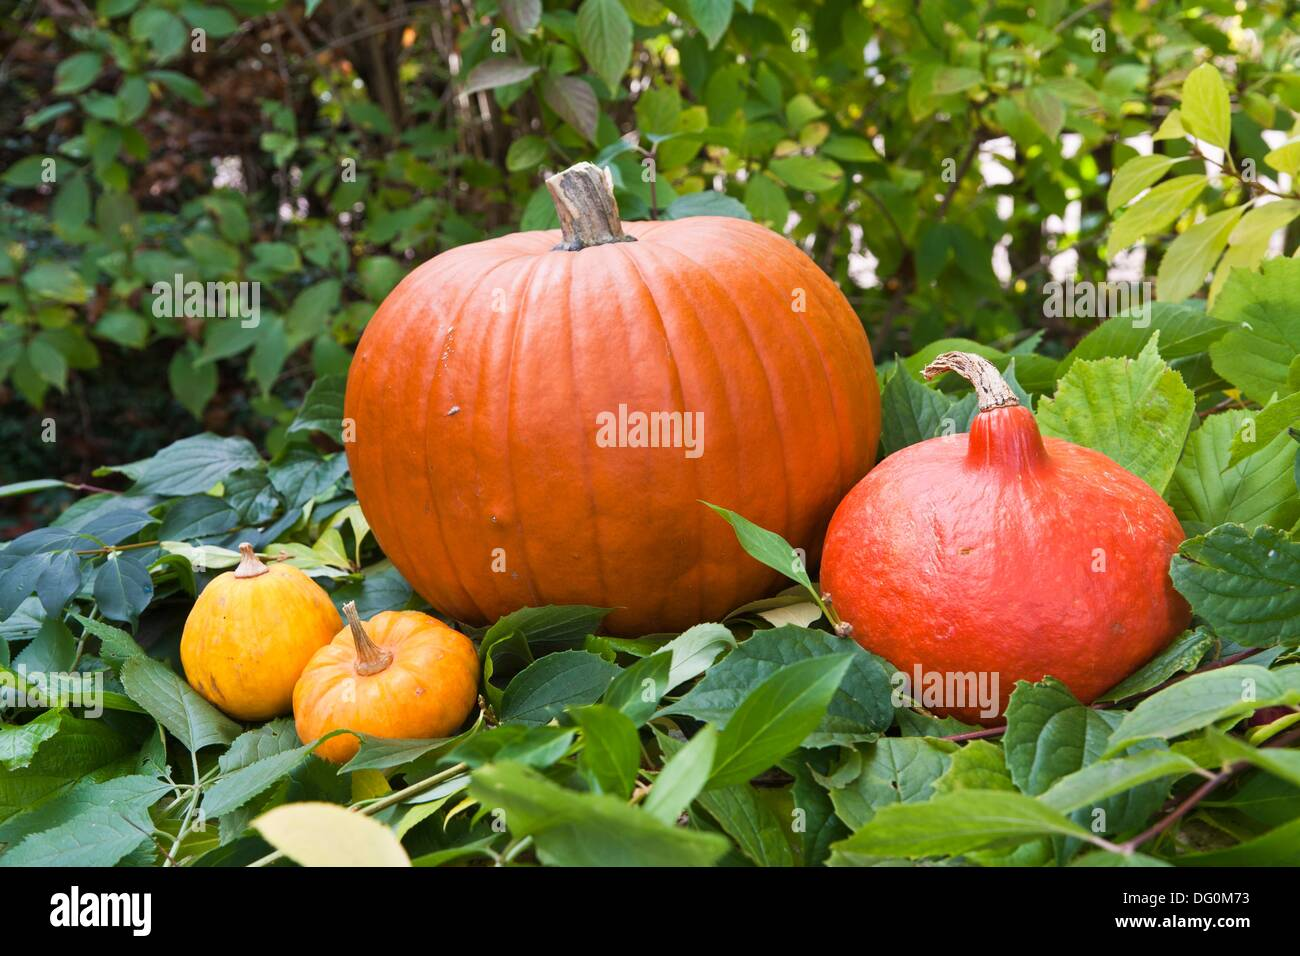 Colorful pumpkins and squash in the garden, Germany, Europe - Stock Image